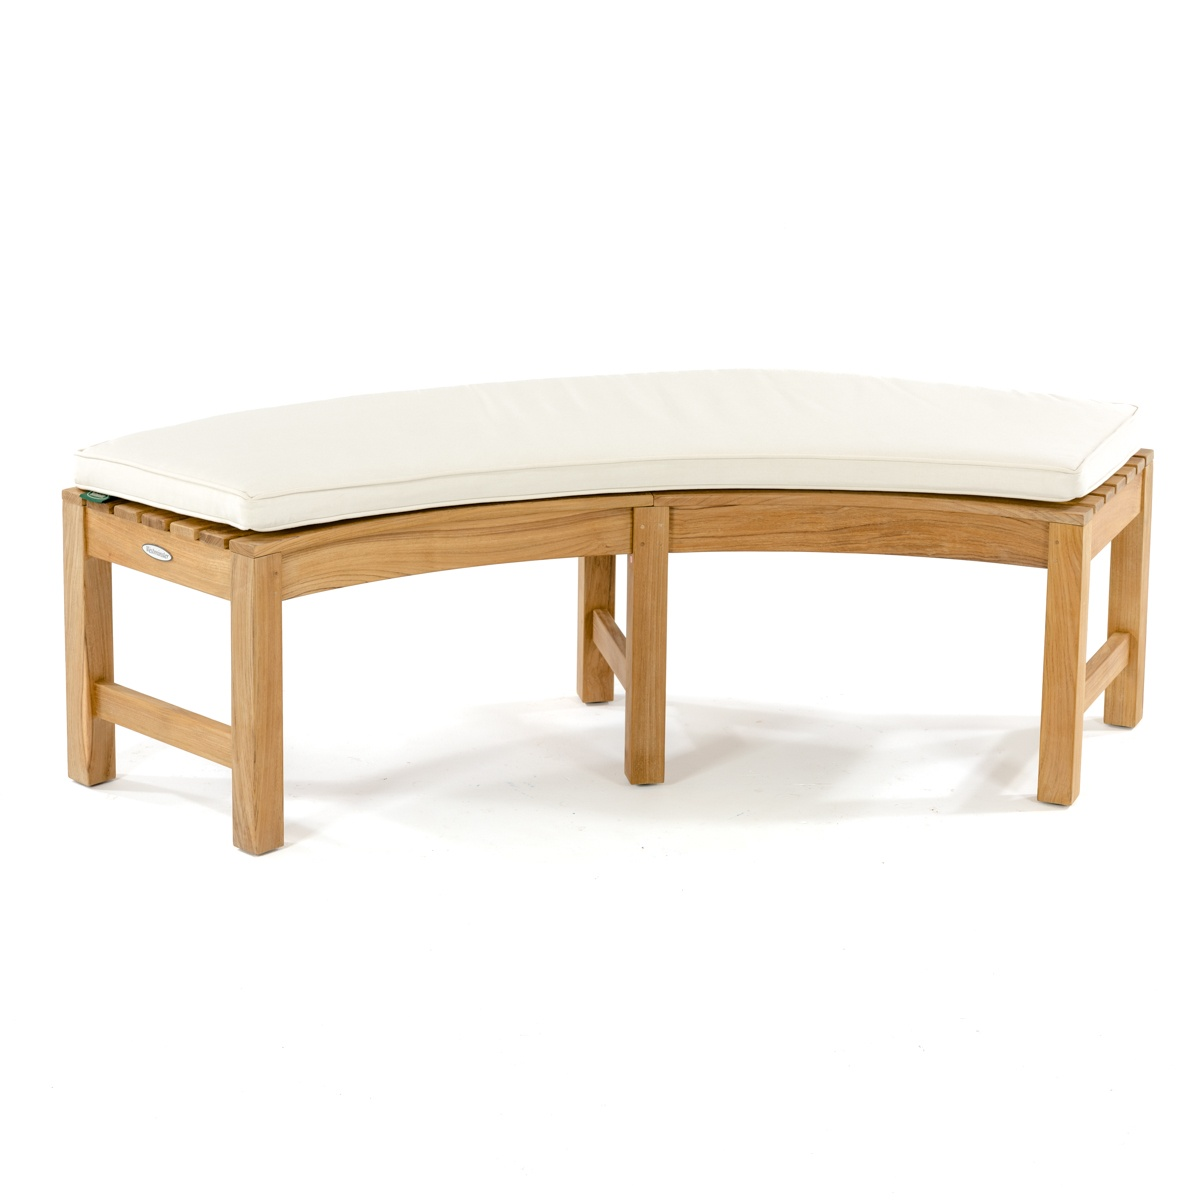 Buckingham Teak Backless Curved Round Bench Westminster Teak Outdoor Furniture